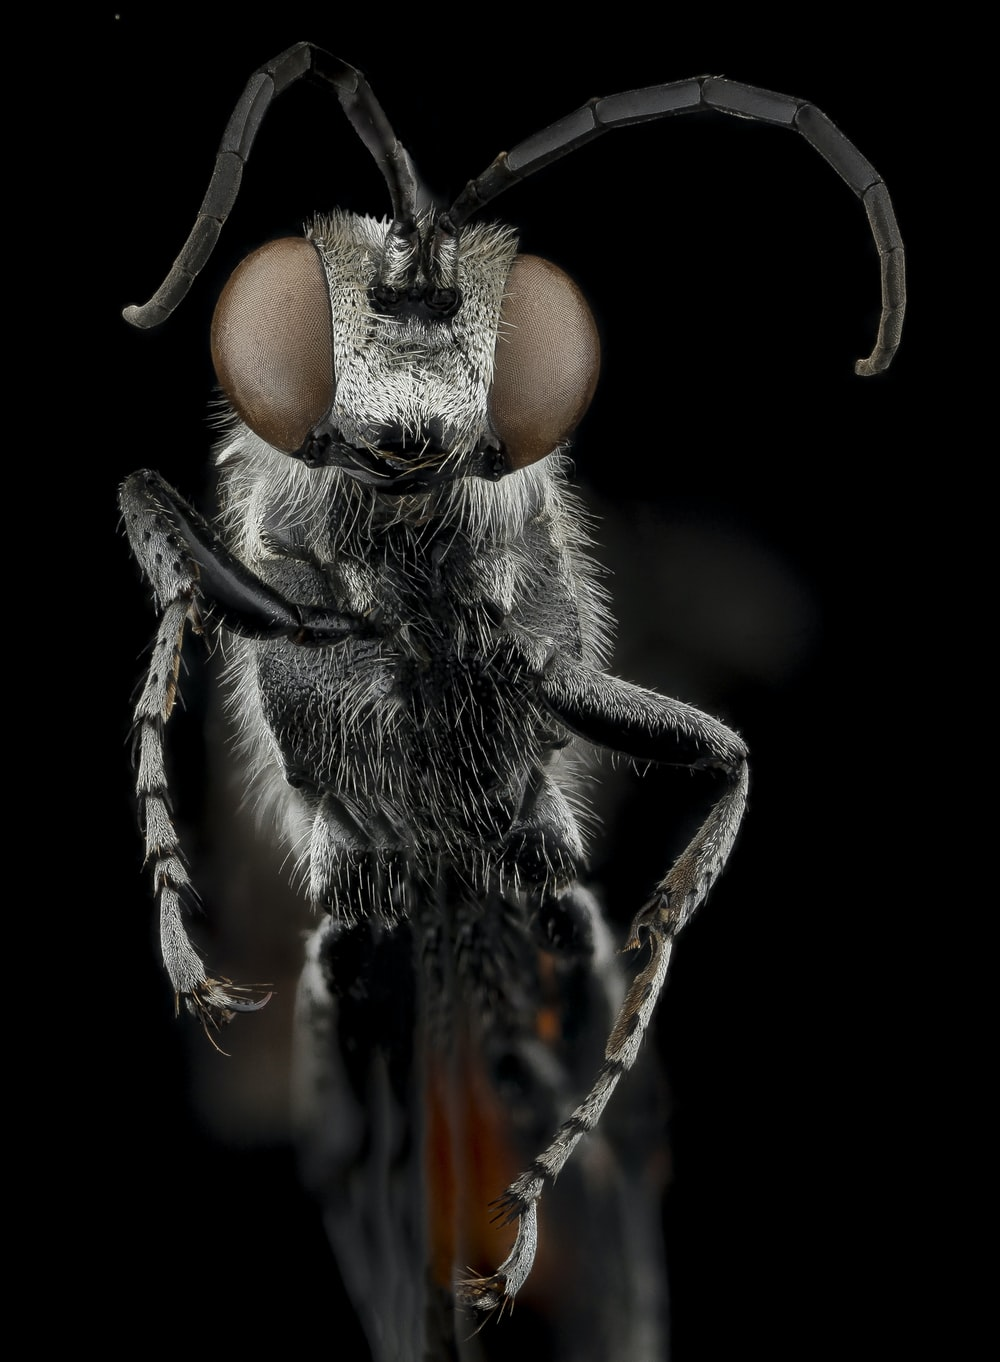 black and brown fly in close up photography